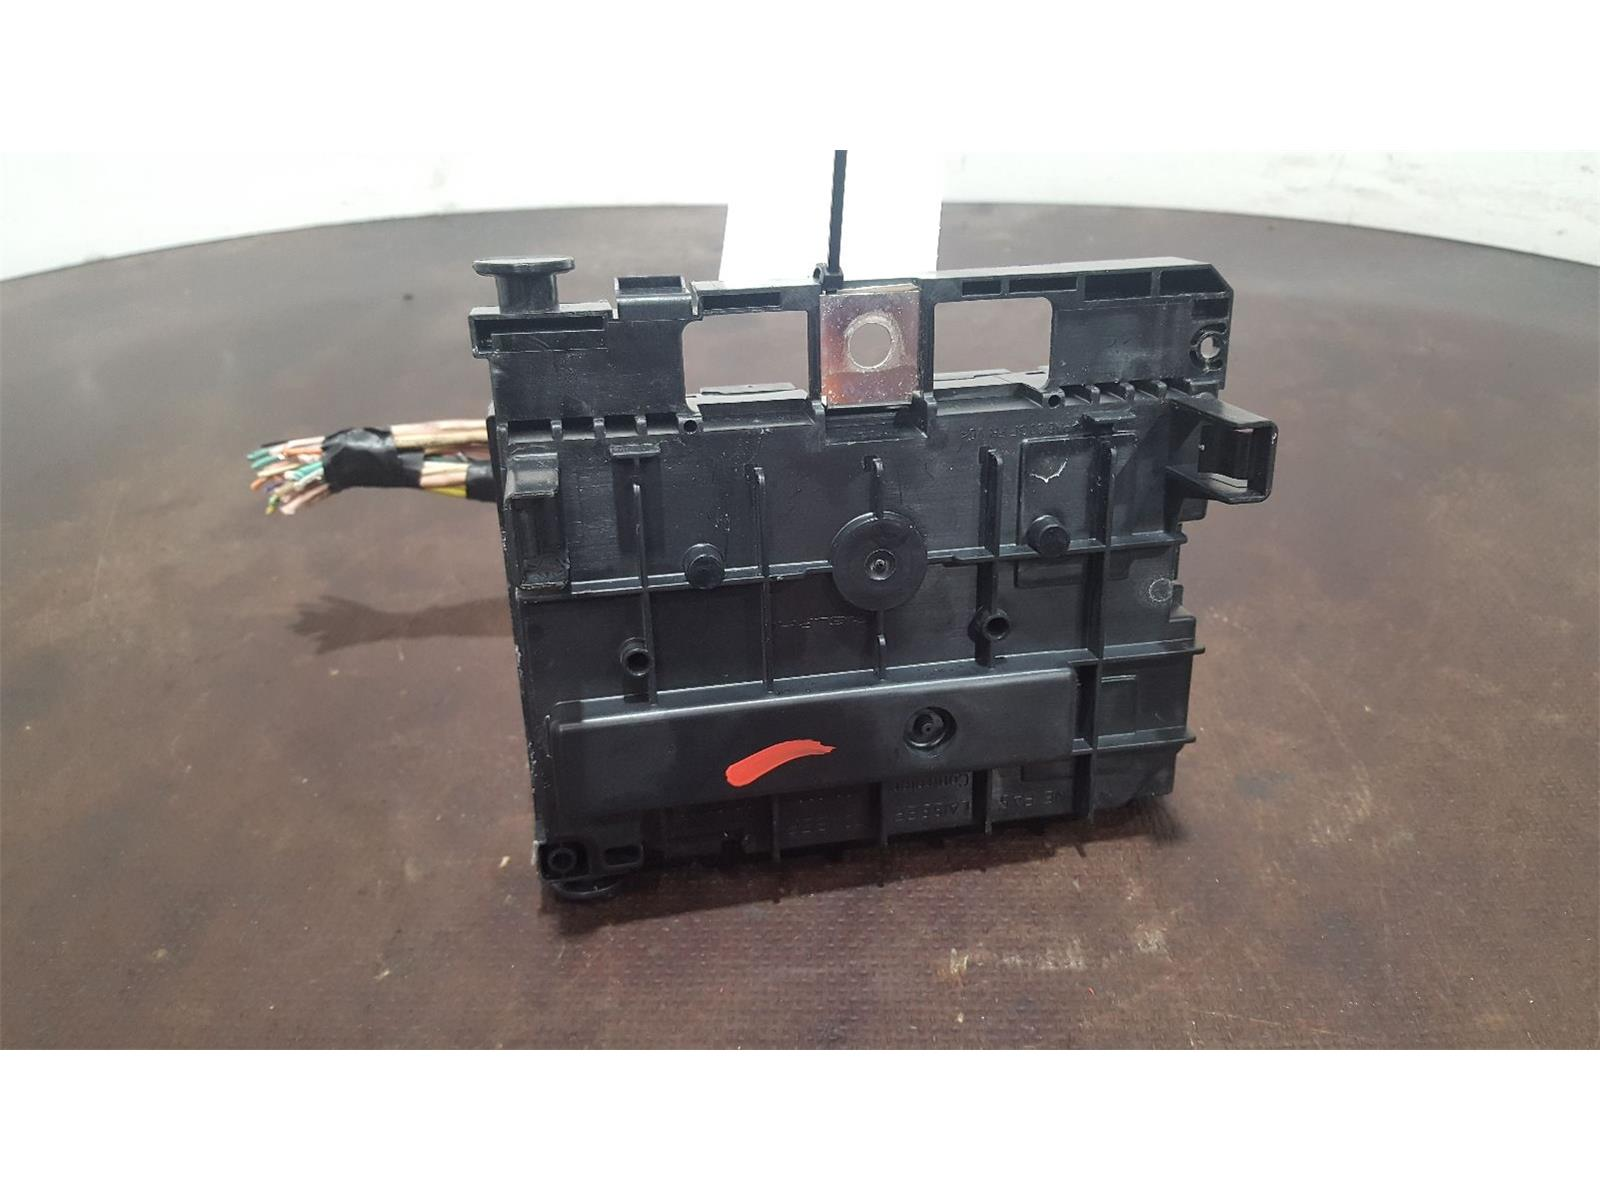 Peugeot 308 2008 To 2010 Se Hdi Fuse Box Used And Spare Parts At Cover Combellack Vehicle Recyclers